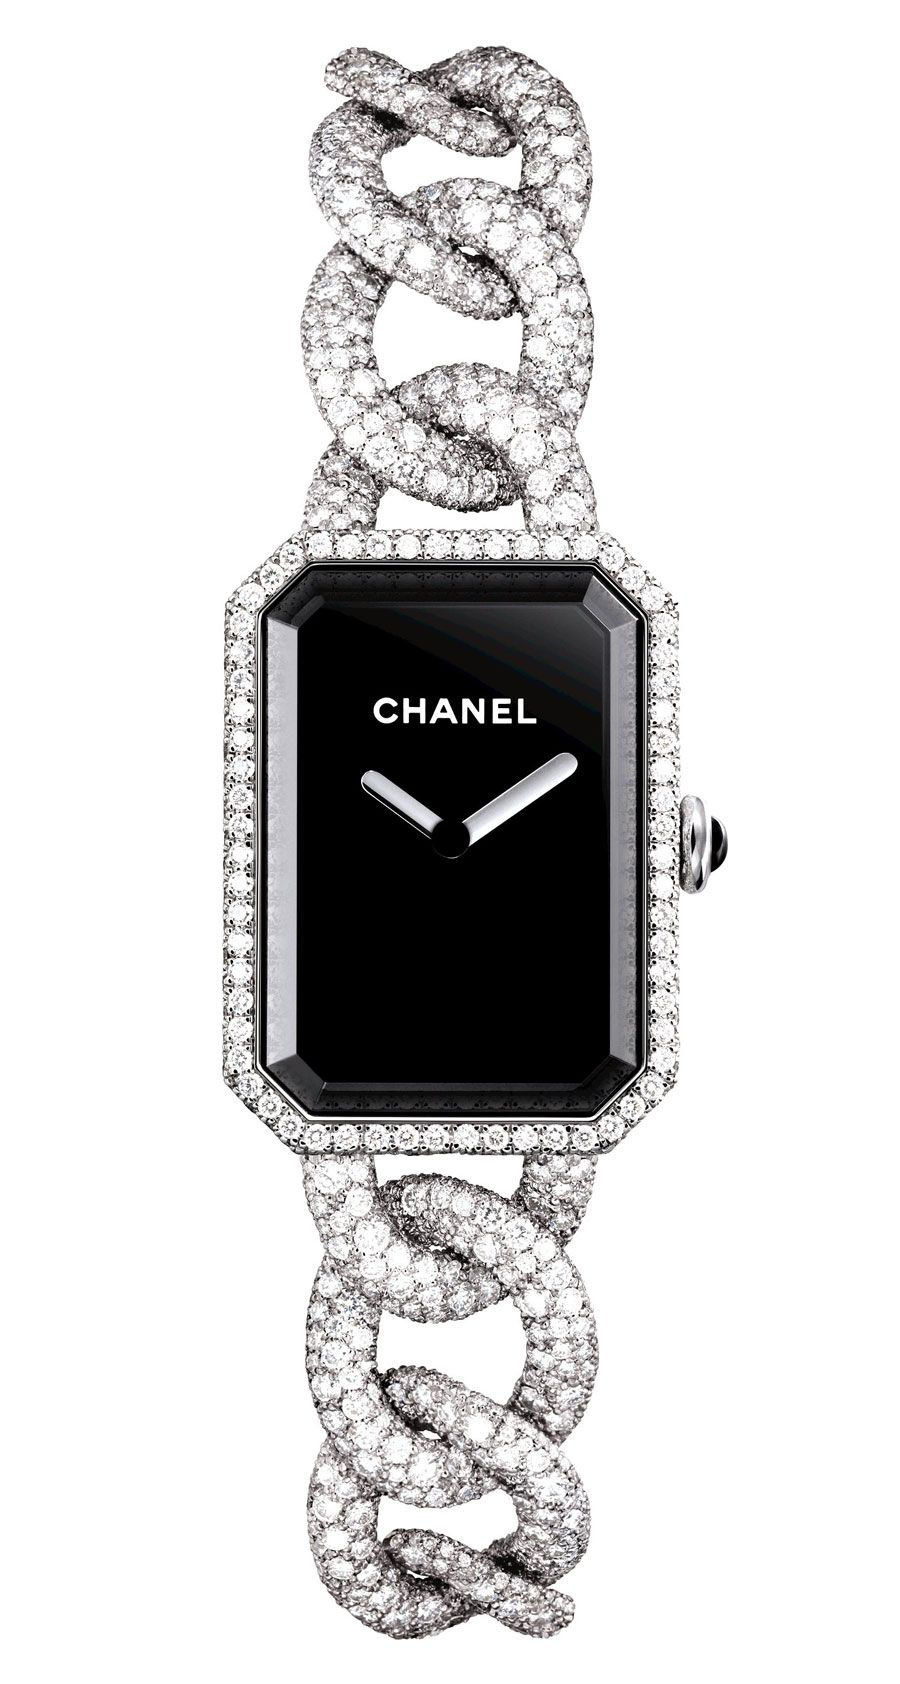 discount e friend watches date to watch women original image mail j diamonds white quartz catalog chanel black ceramic